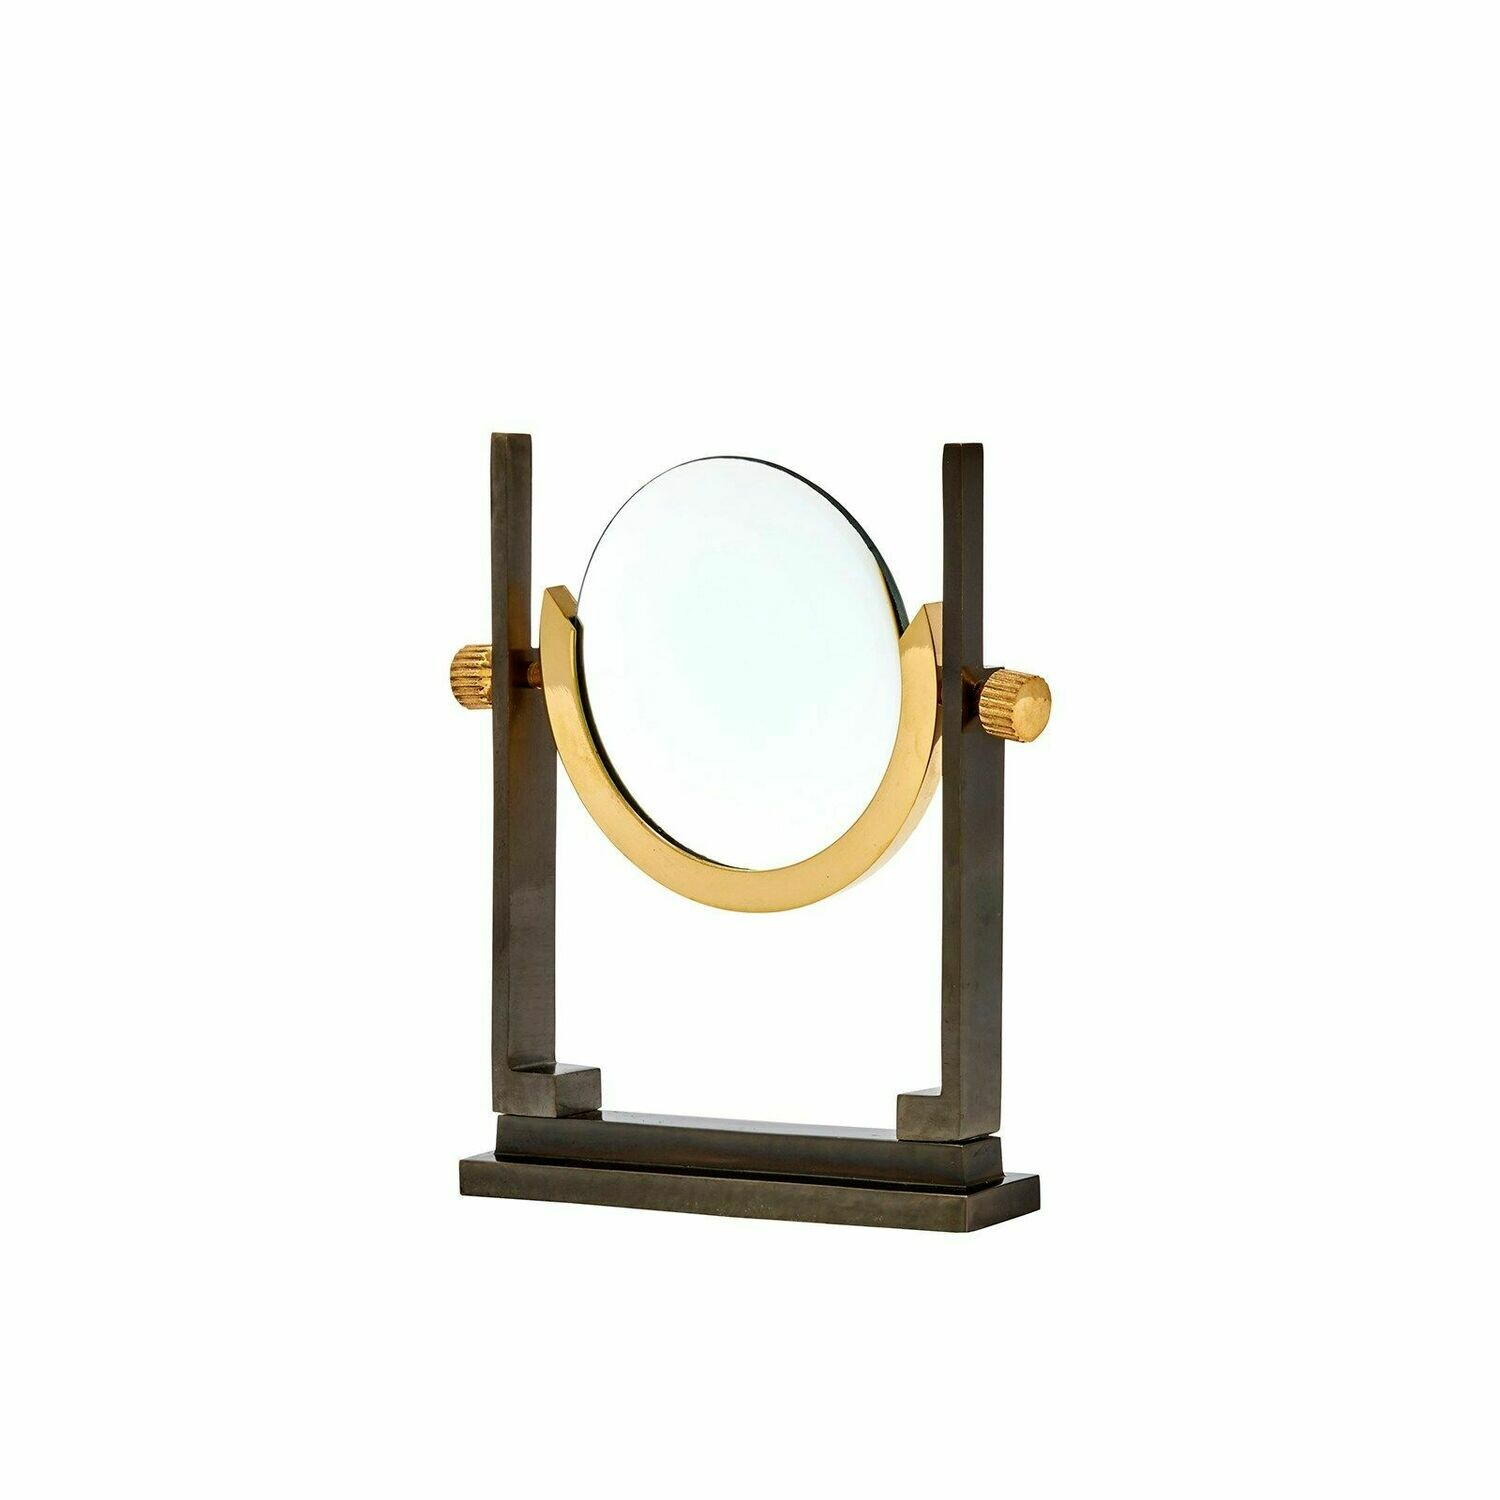 Sagan Small Magnifying Glass With Stand